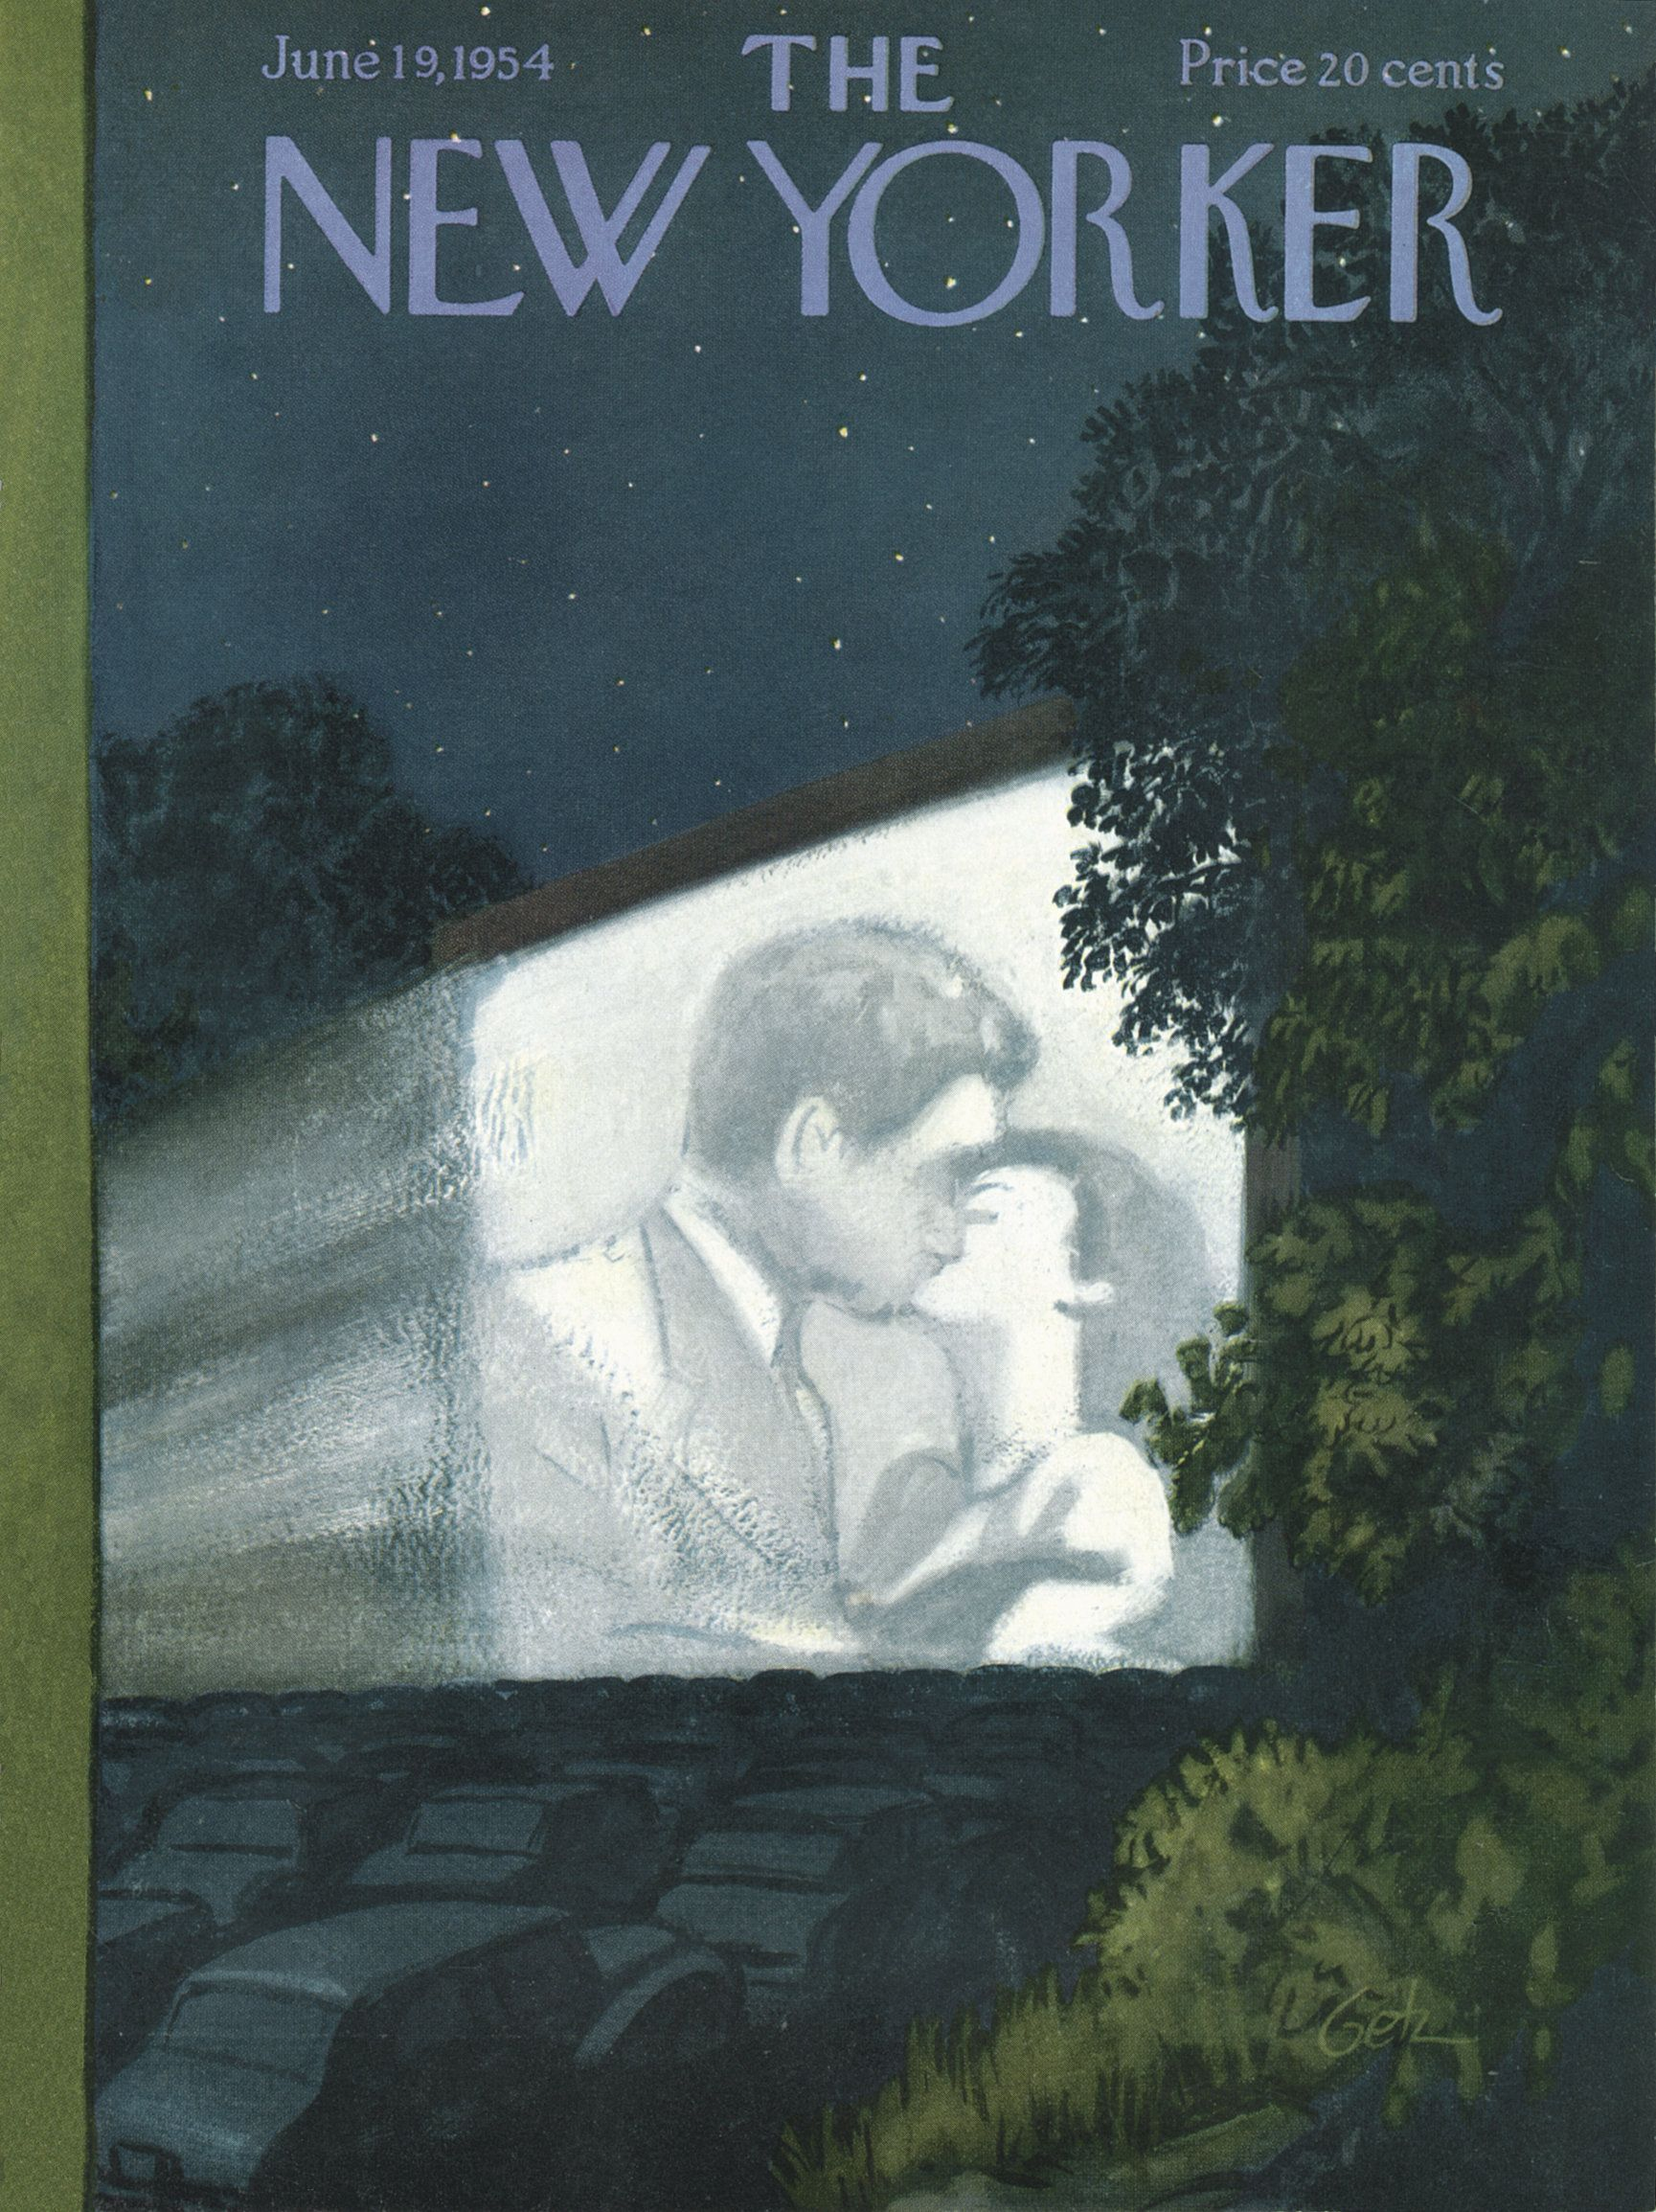 The New Yorker - Saturday, June 19, 1954 - Issue # 1531 - Vol. 30 - N° 18 - Cover by : Arthur Getz